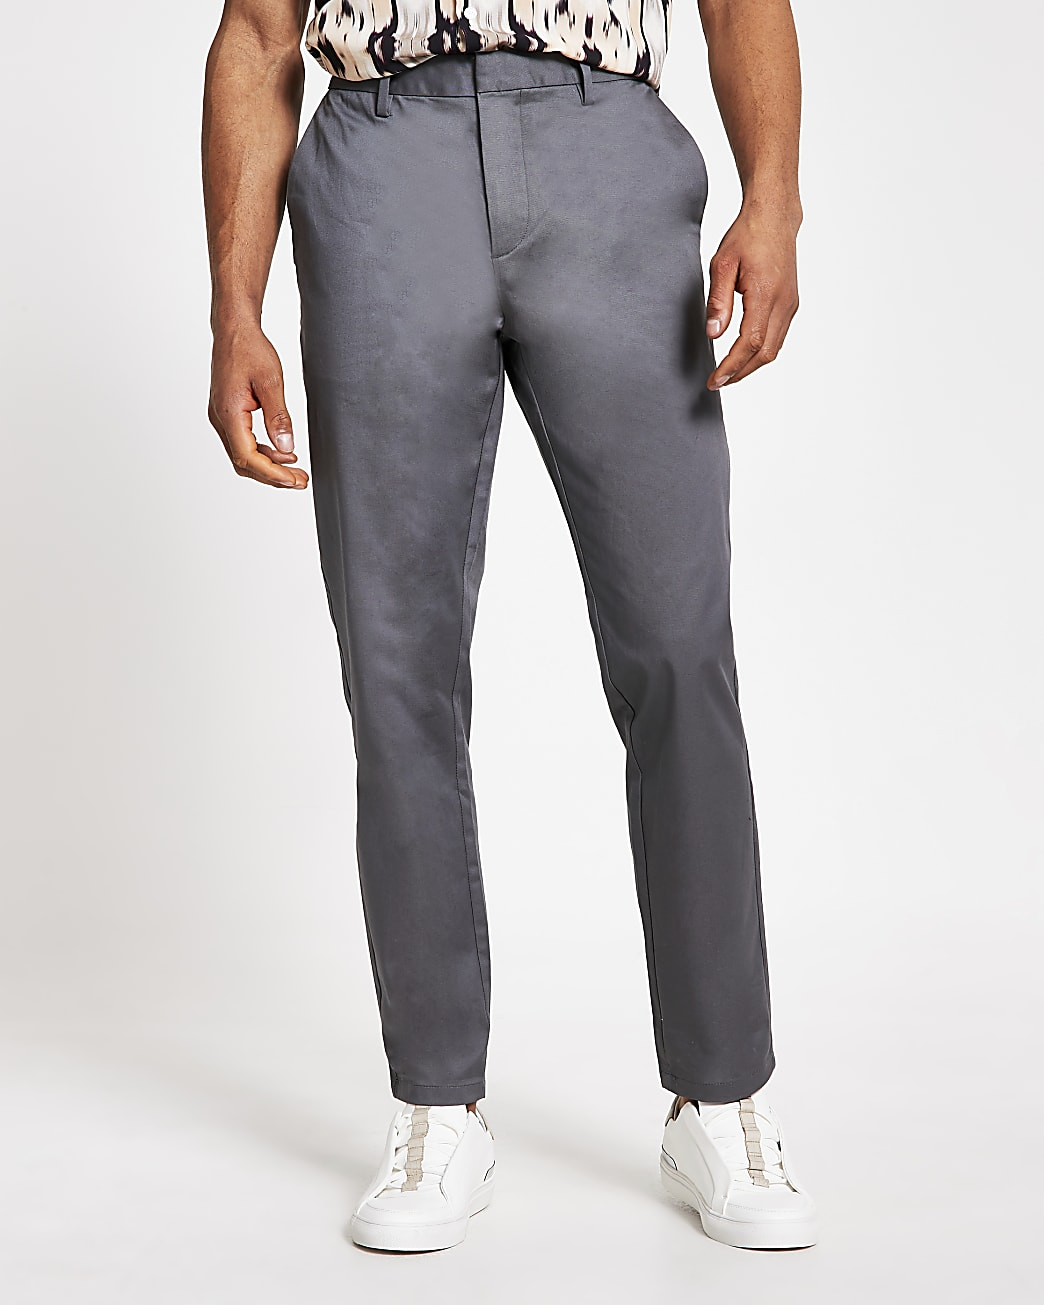 Grey slim fit chino trousers